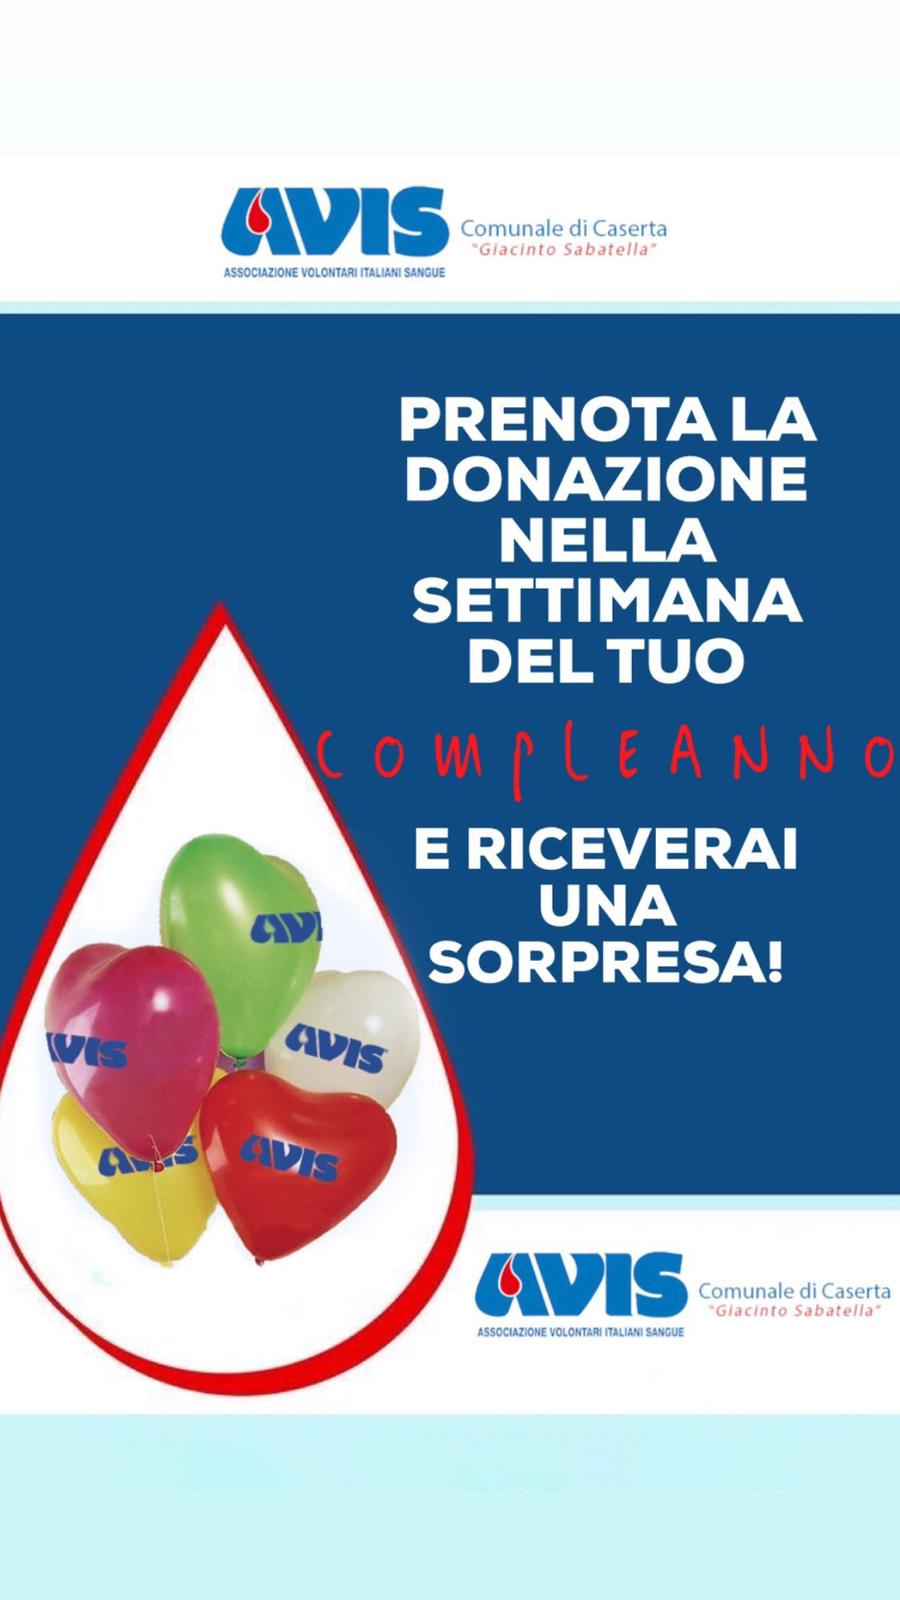 COMPLEANNO IN AVIS!